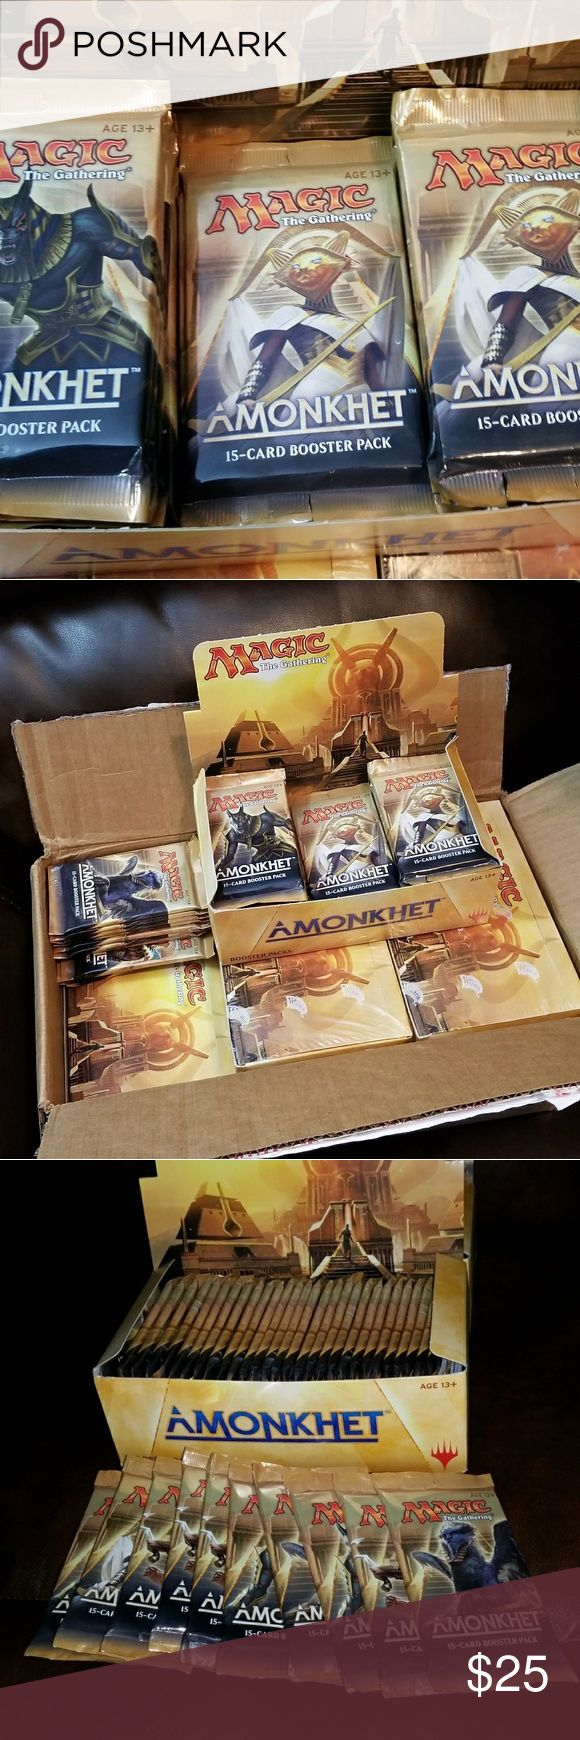 Magic the Gathering Booster Packs MTG Magic Cards These are Amonkhet booster packs, we received several cases of booster packs for a great price and are passing that to you!  10 booster packs for $25 20 booster packs for $45 Wizards of the Coast Other